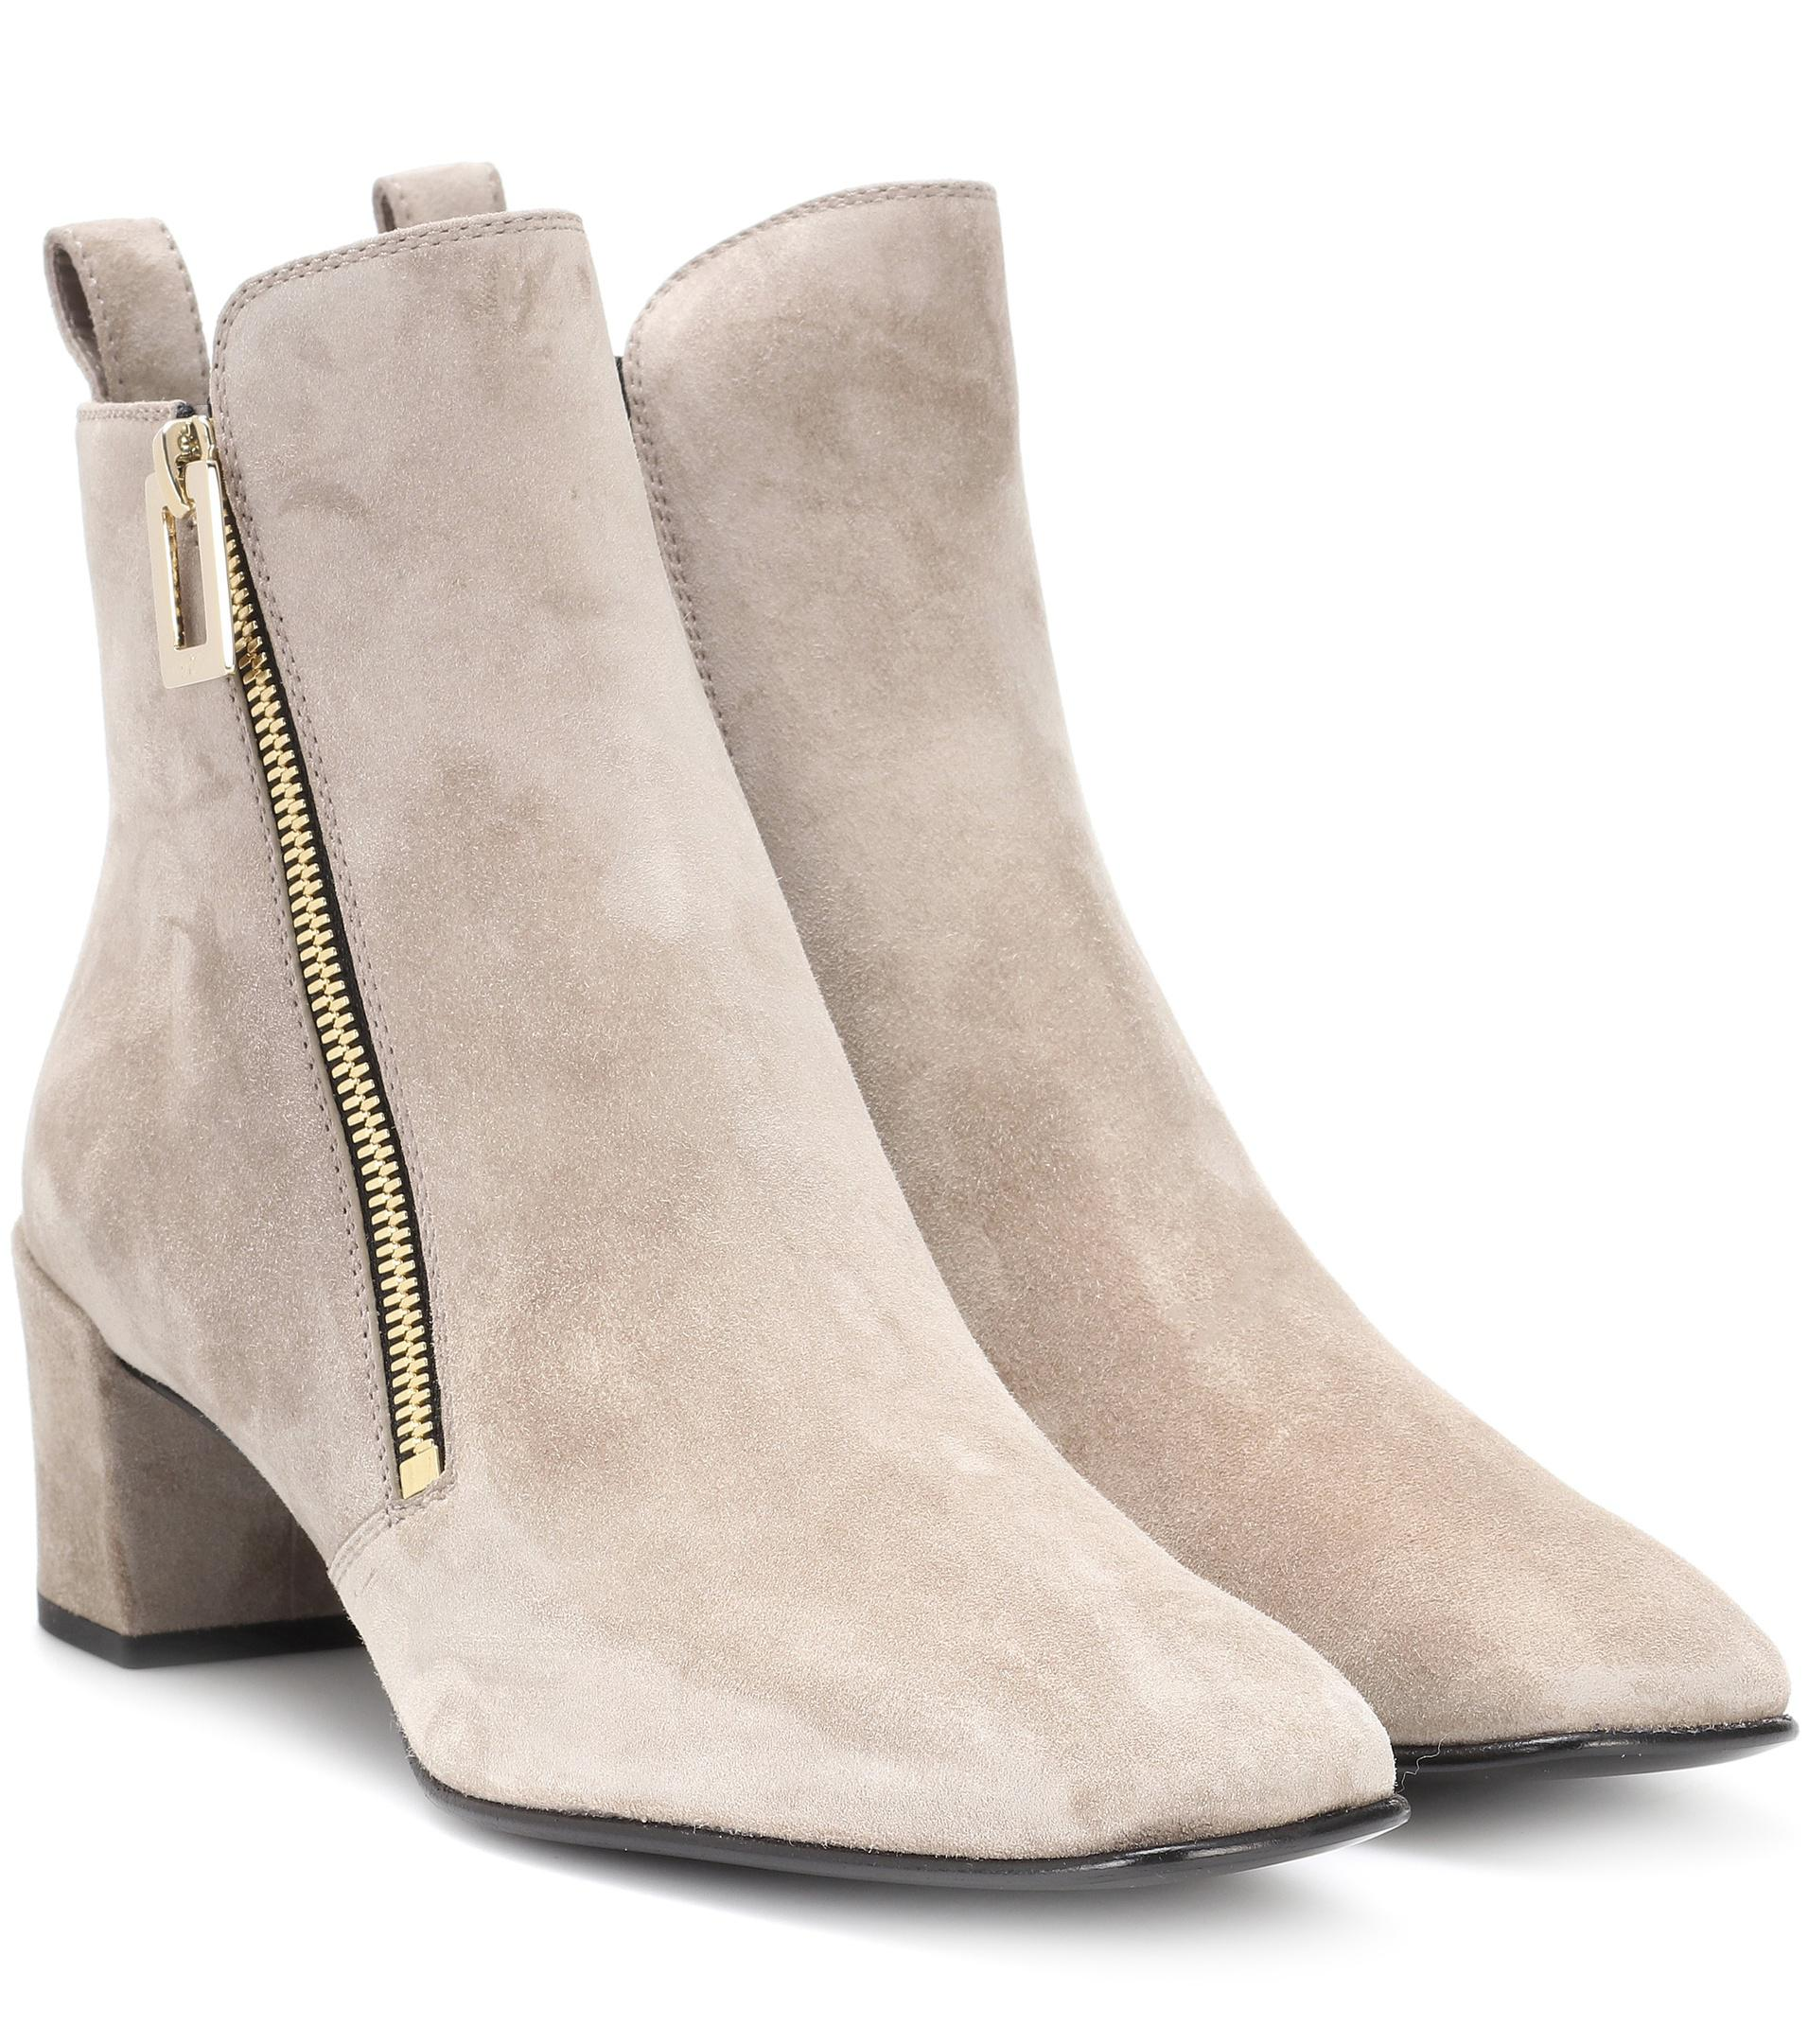 Roger Vivier Polly Zip suede ankle boots 12PYtloAjJ